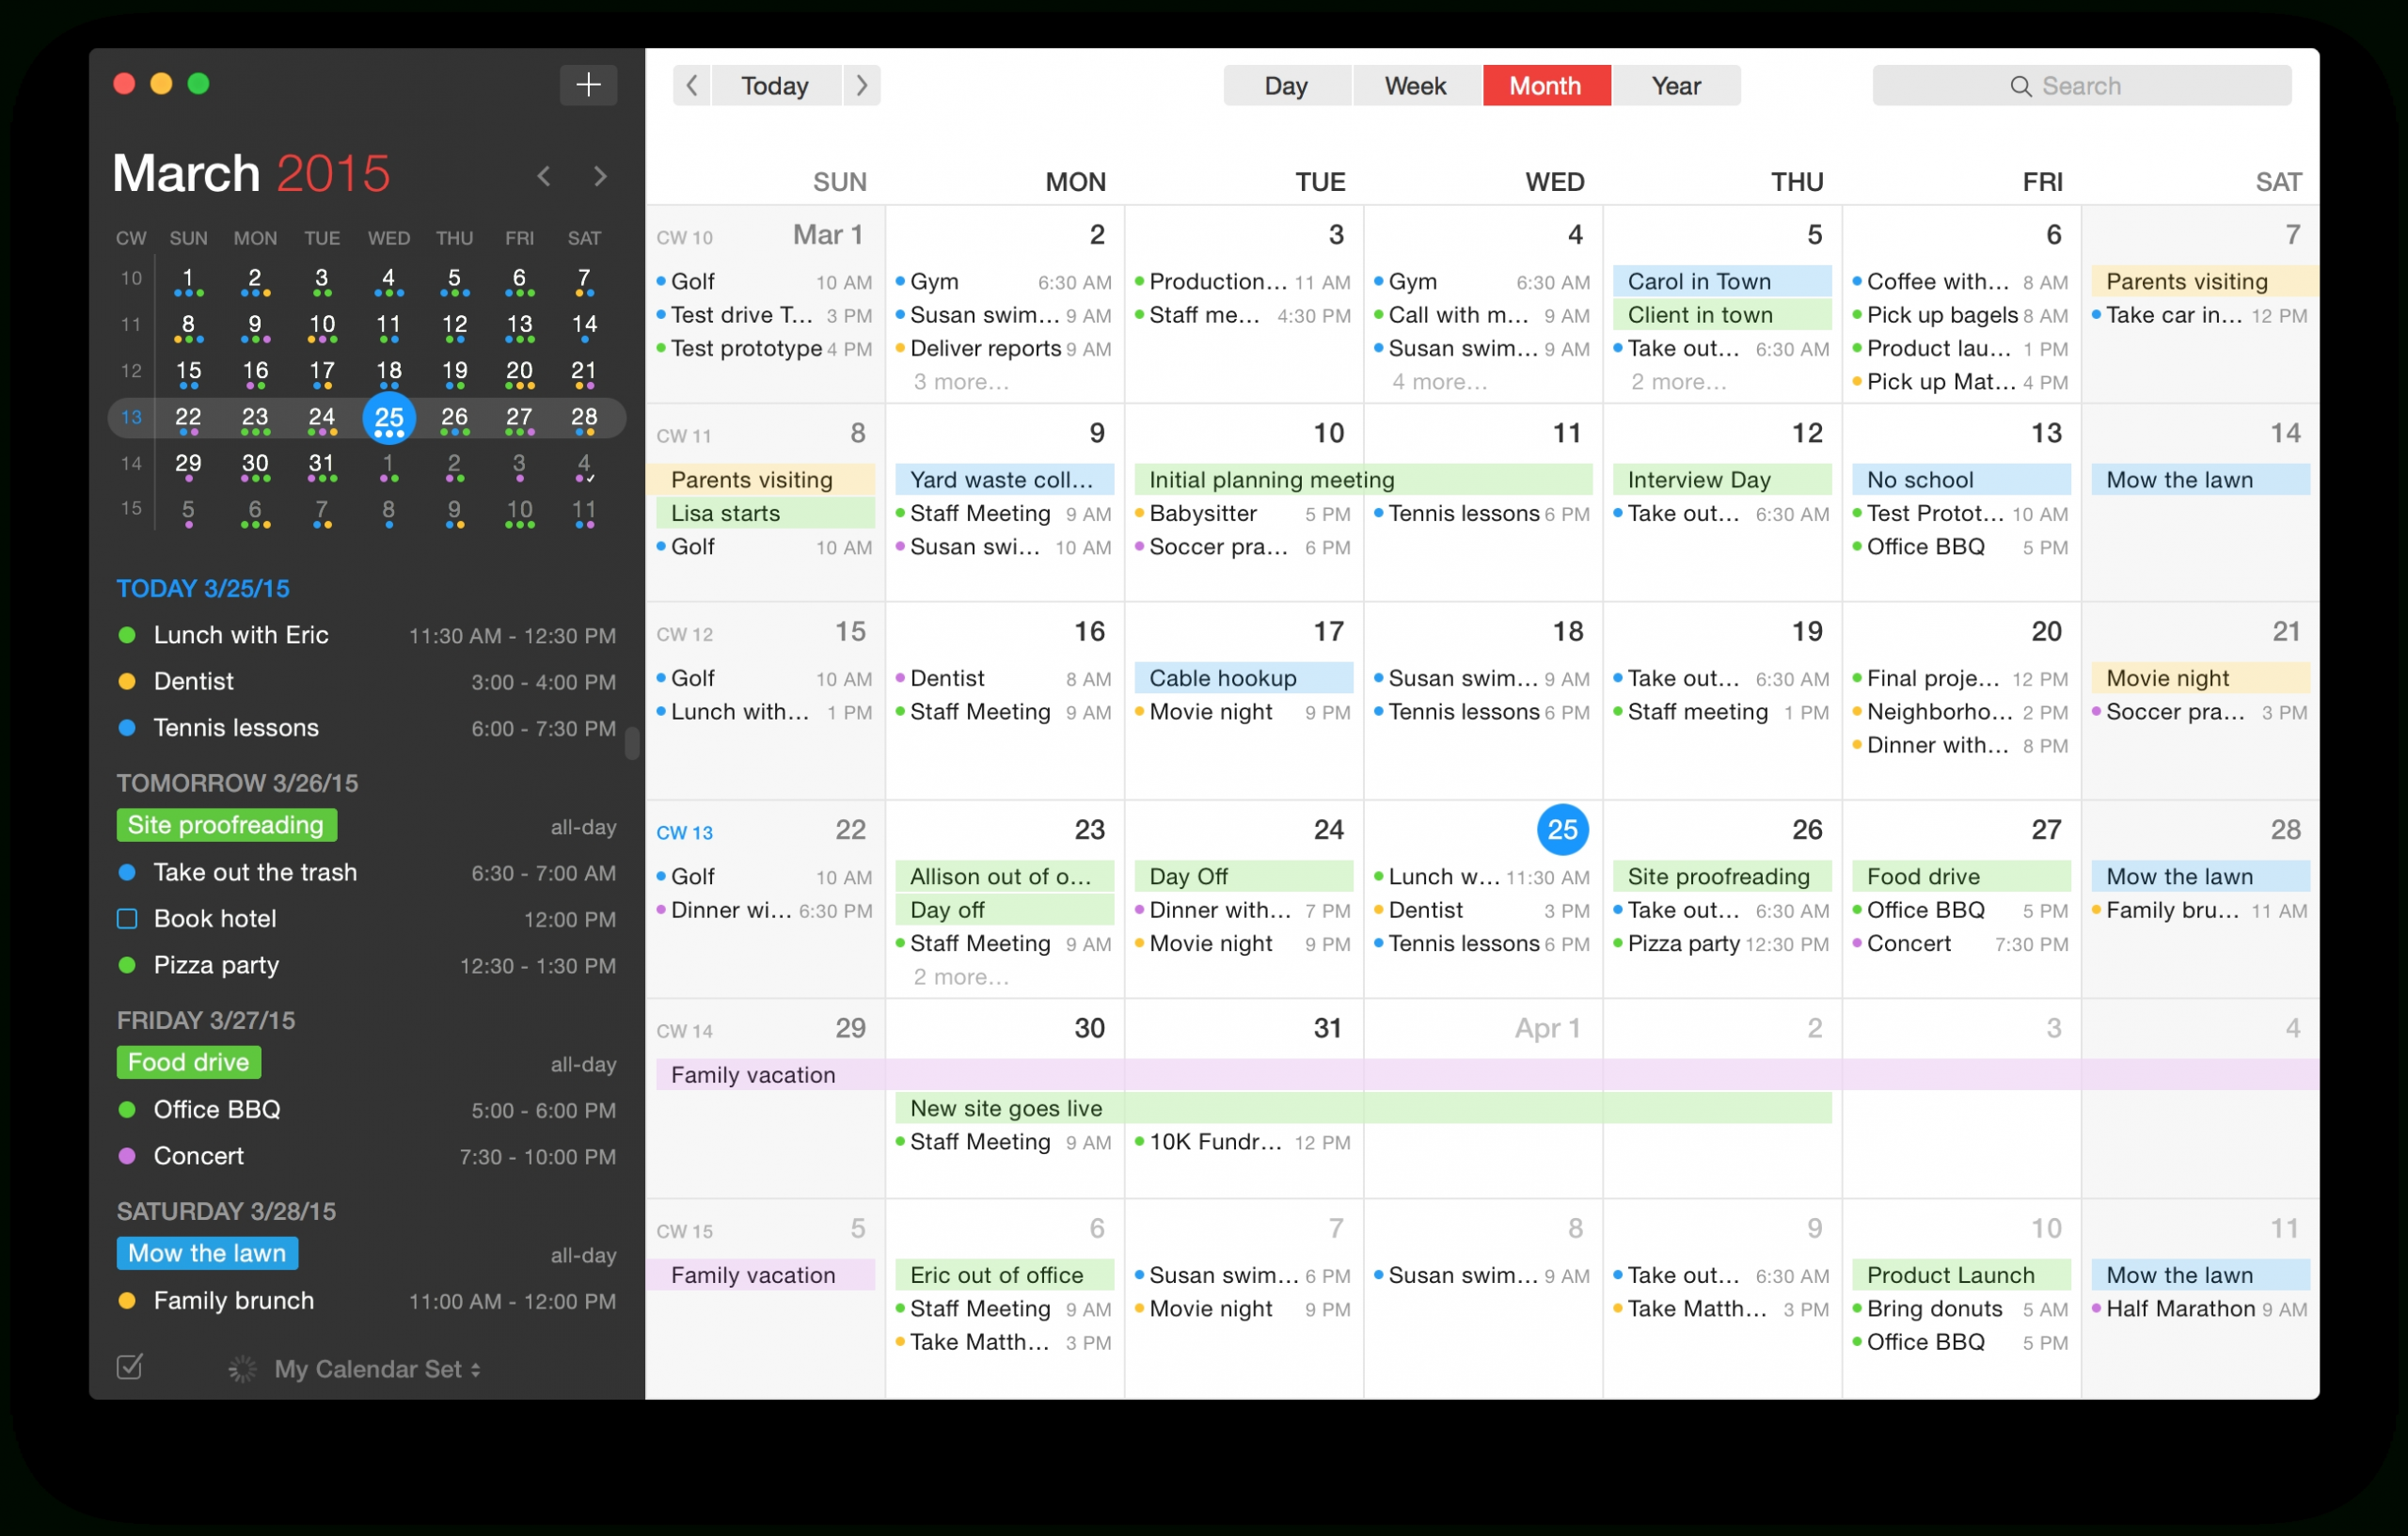 download month view mac os sierra calendar png image with